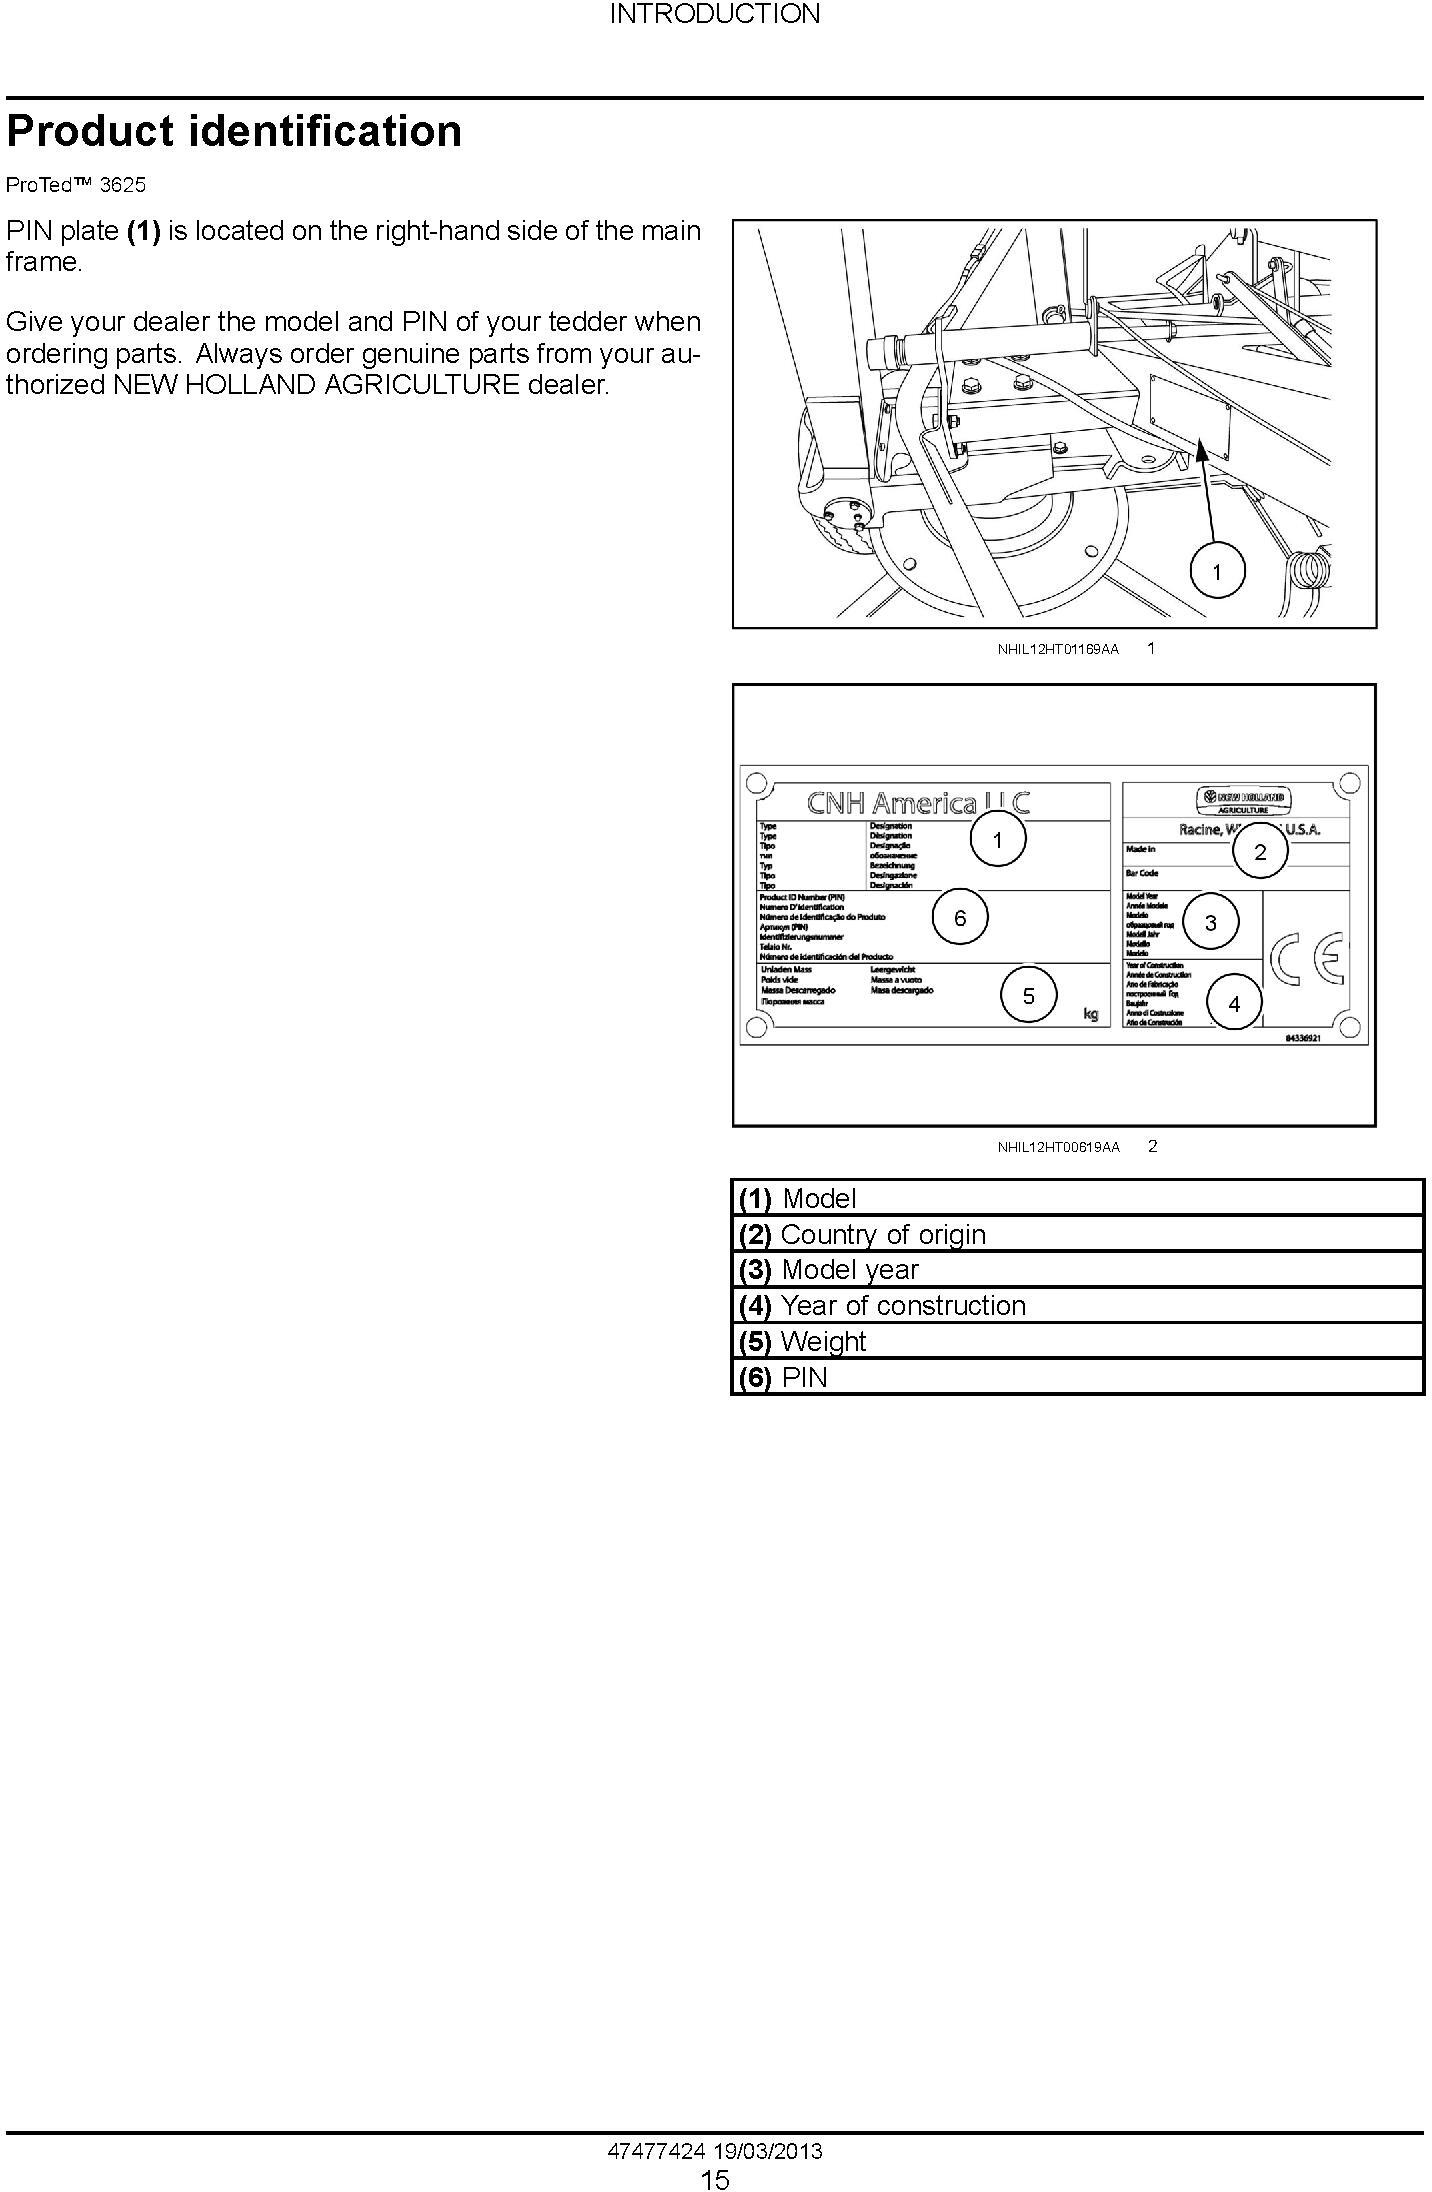 New Holland ProTed 3417, 3625, 3836 Rotary Tedder Service Manual - 1